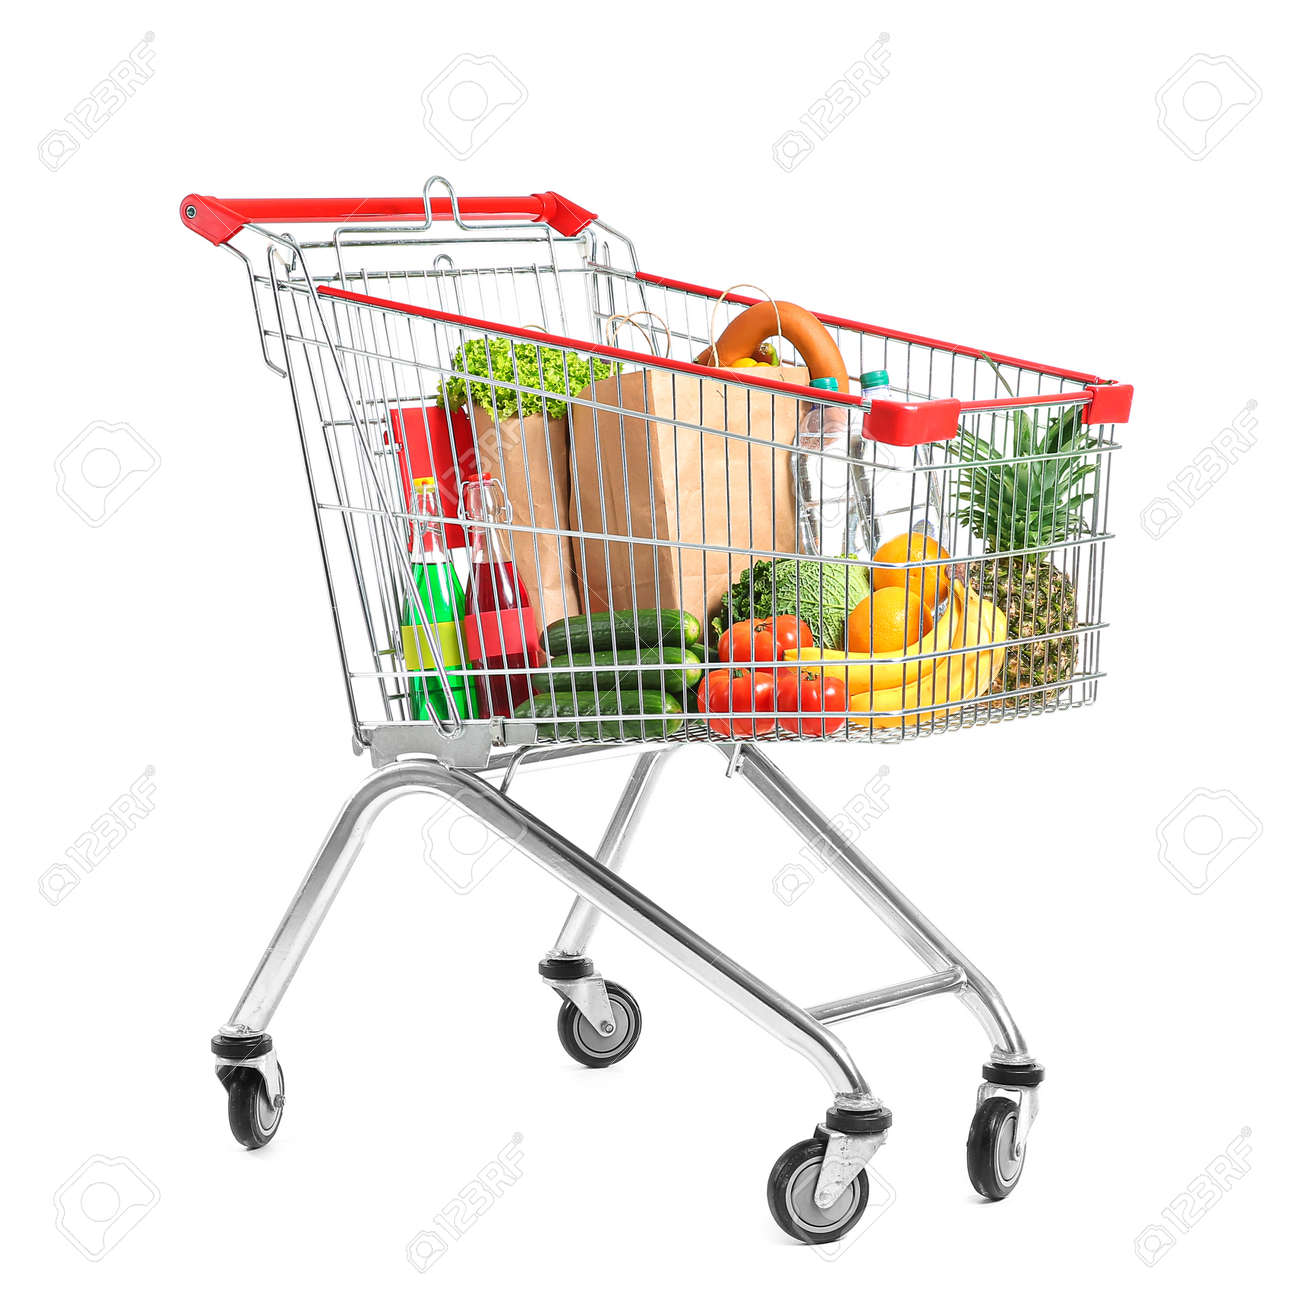 Shopping cart with products on white background - 165720576